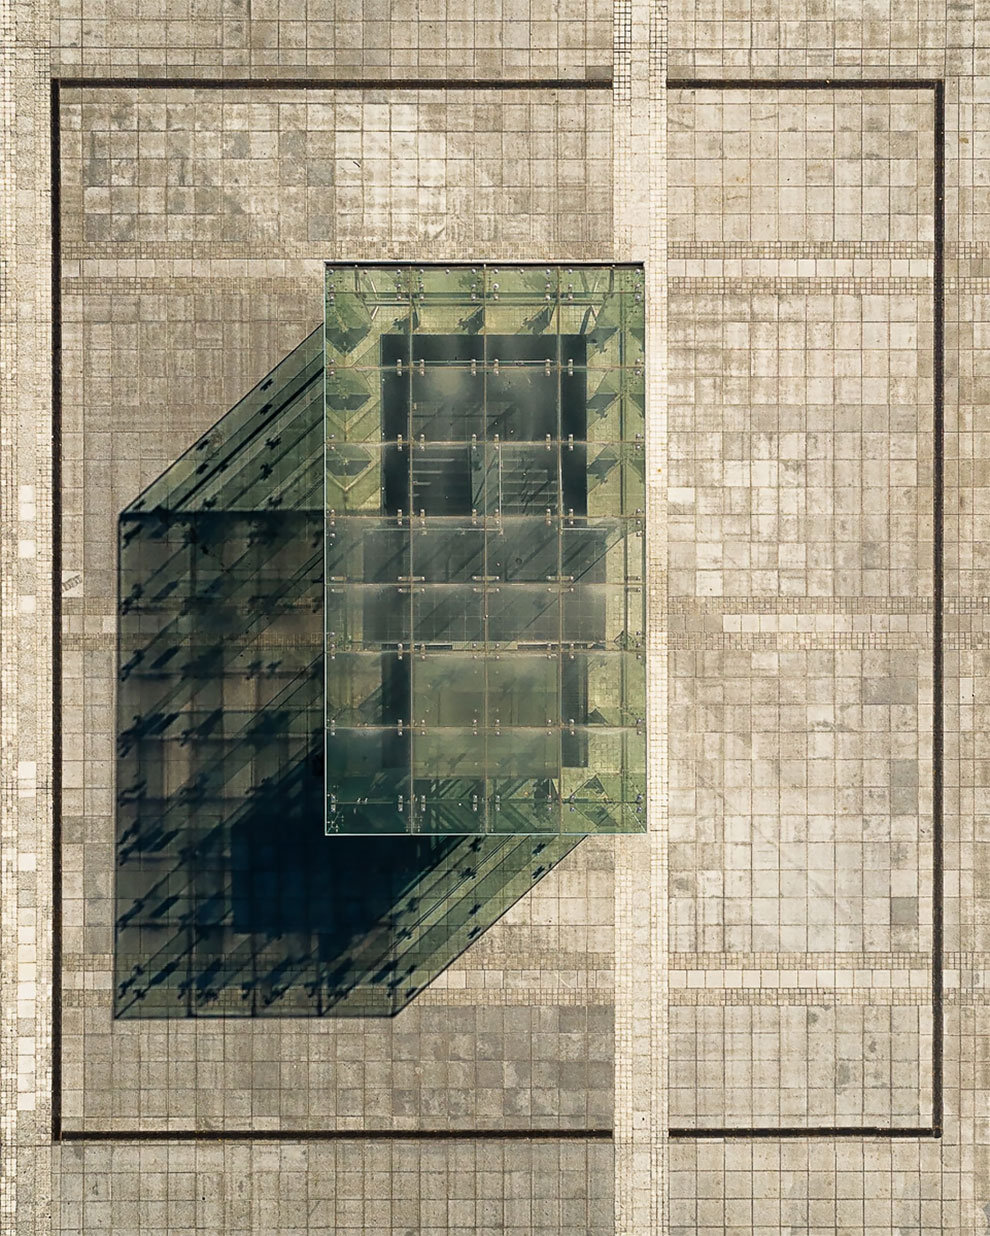 Winning Images of The Architectural Category from The International Photography Awards 2020